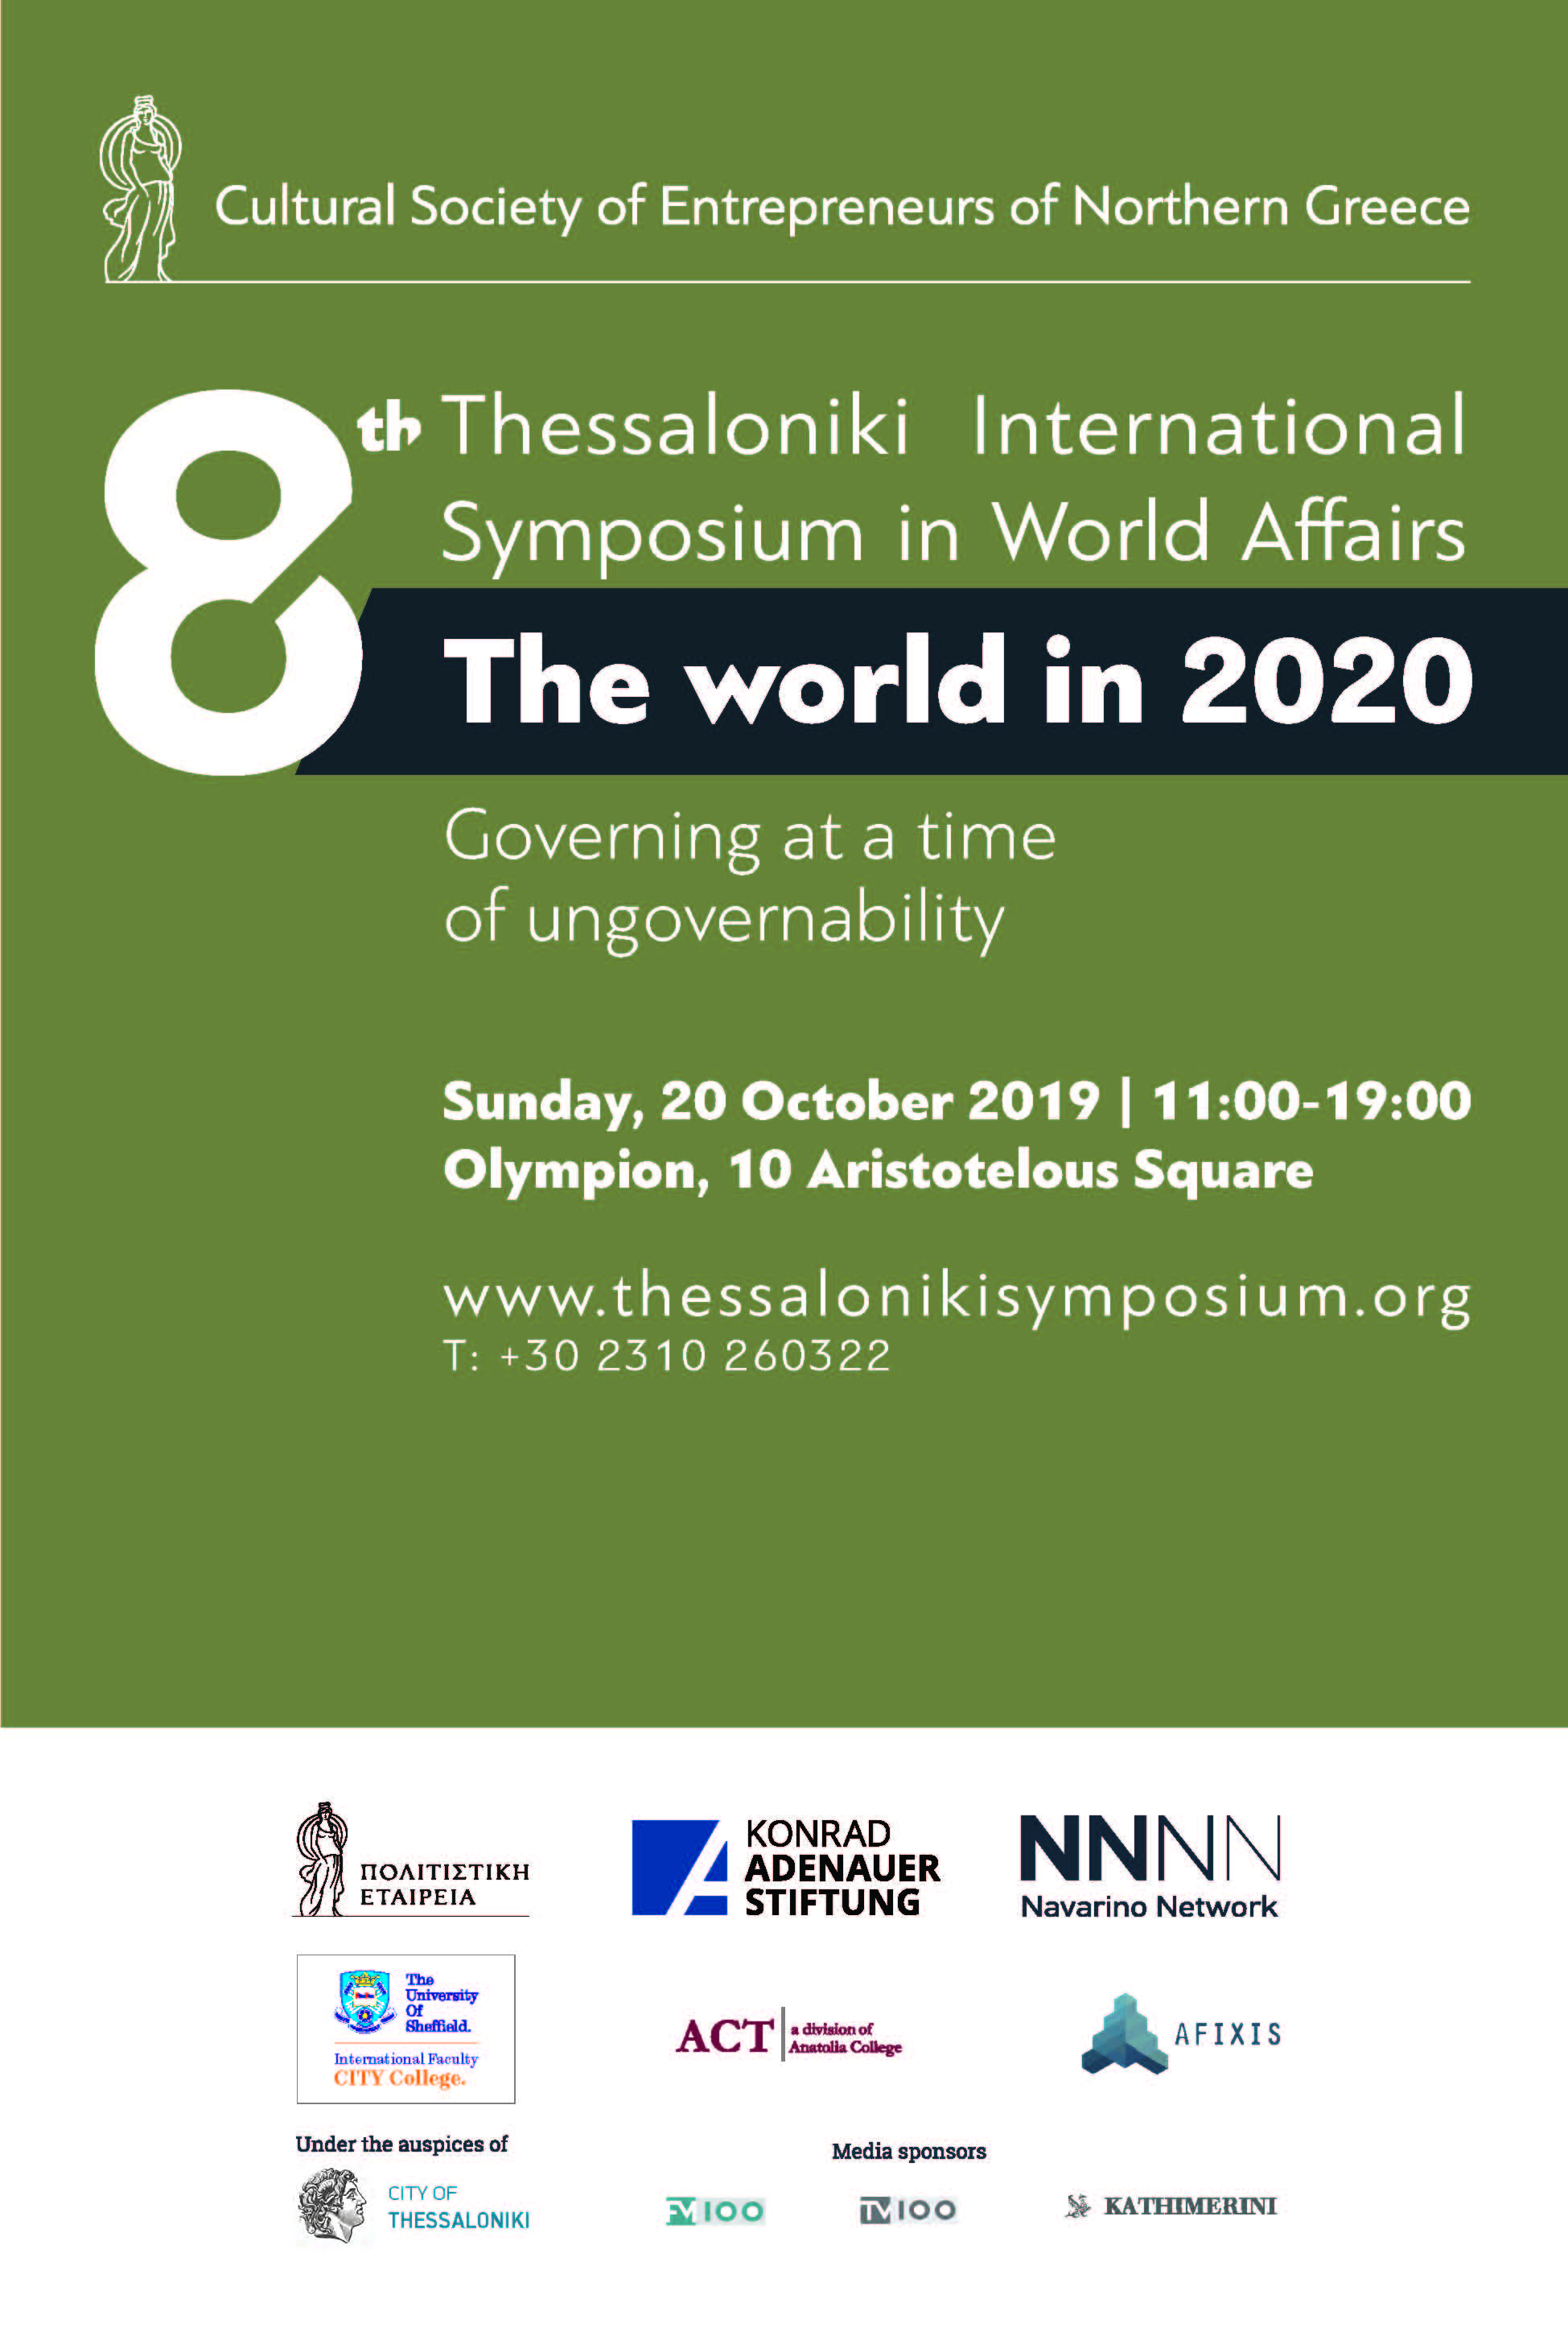 8th Thessaloniki International Symposium in World Affairs